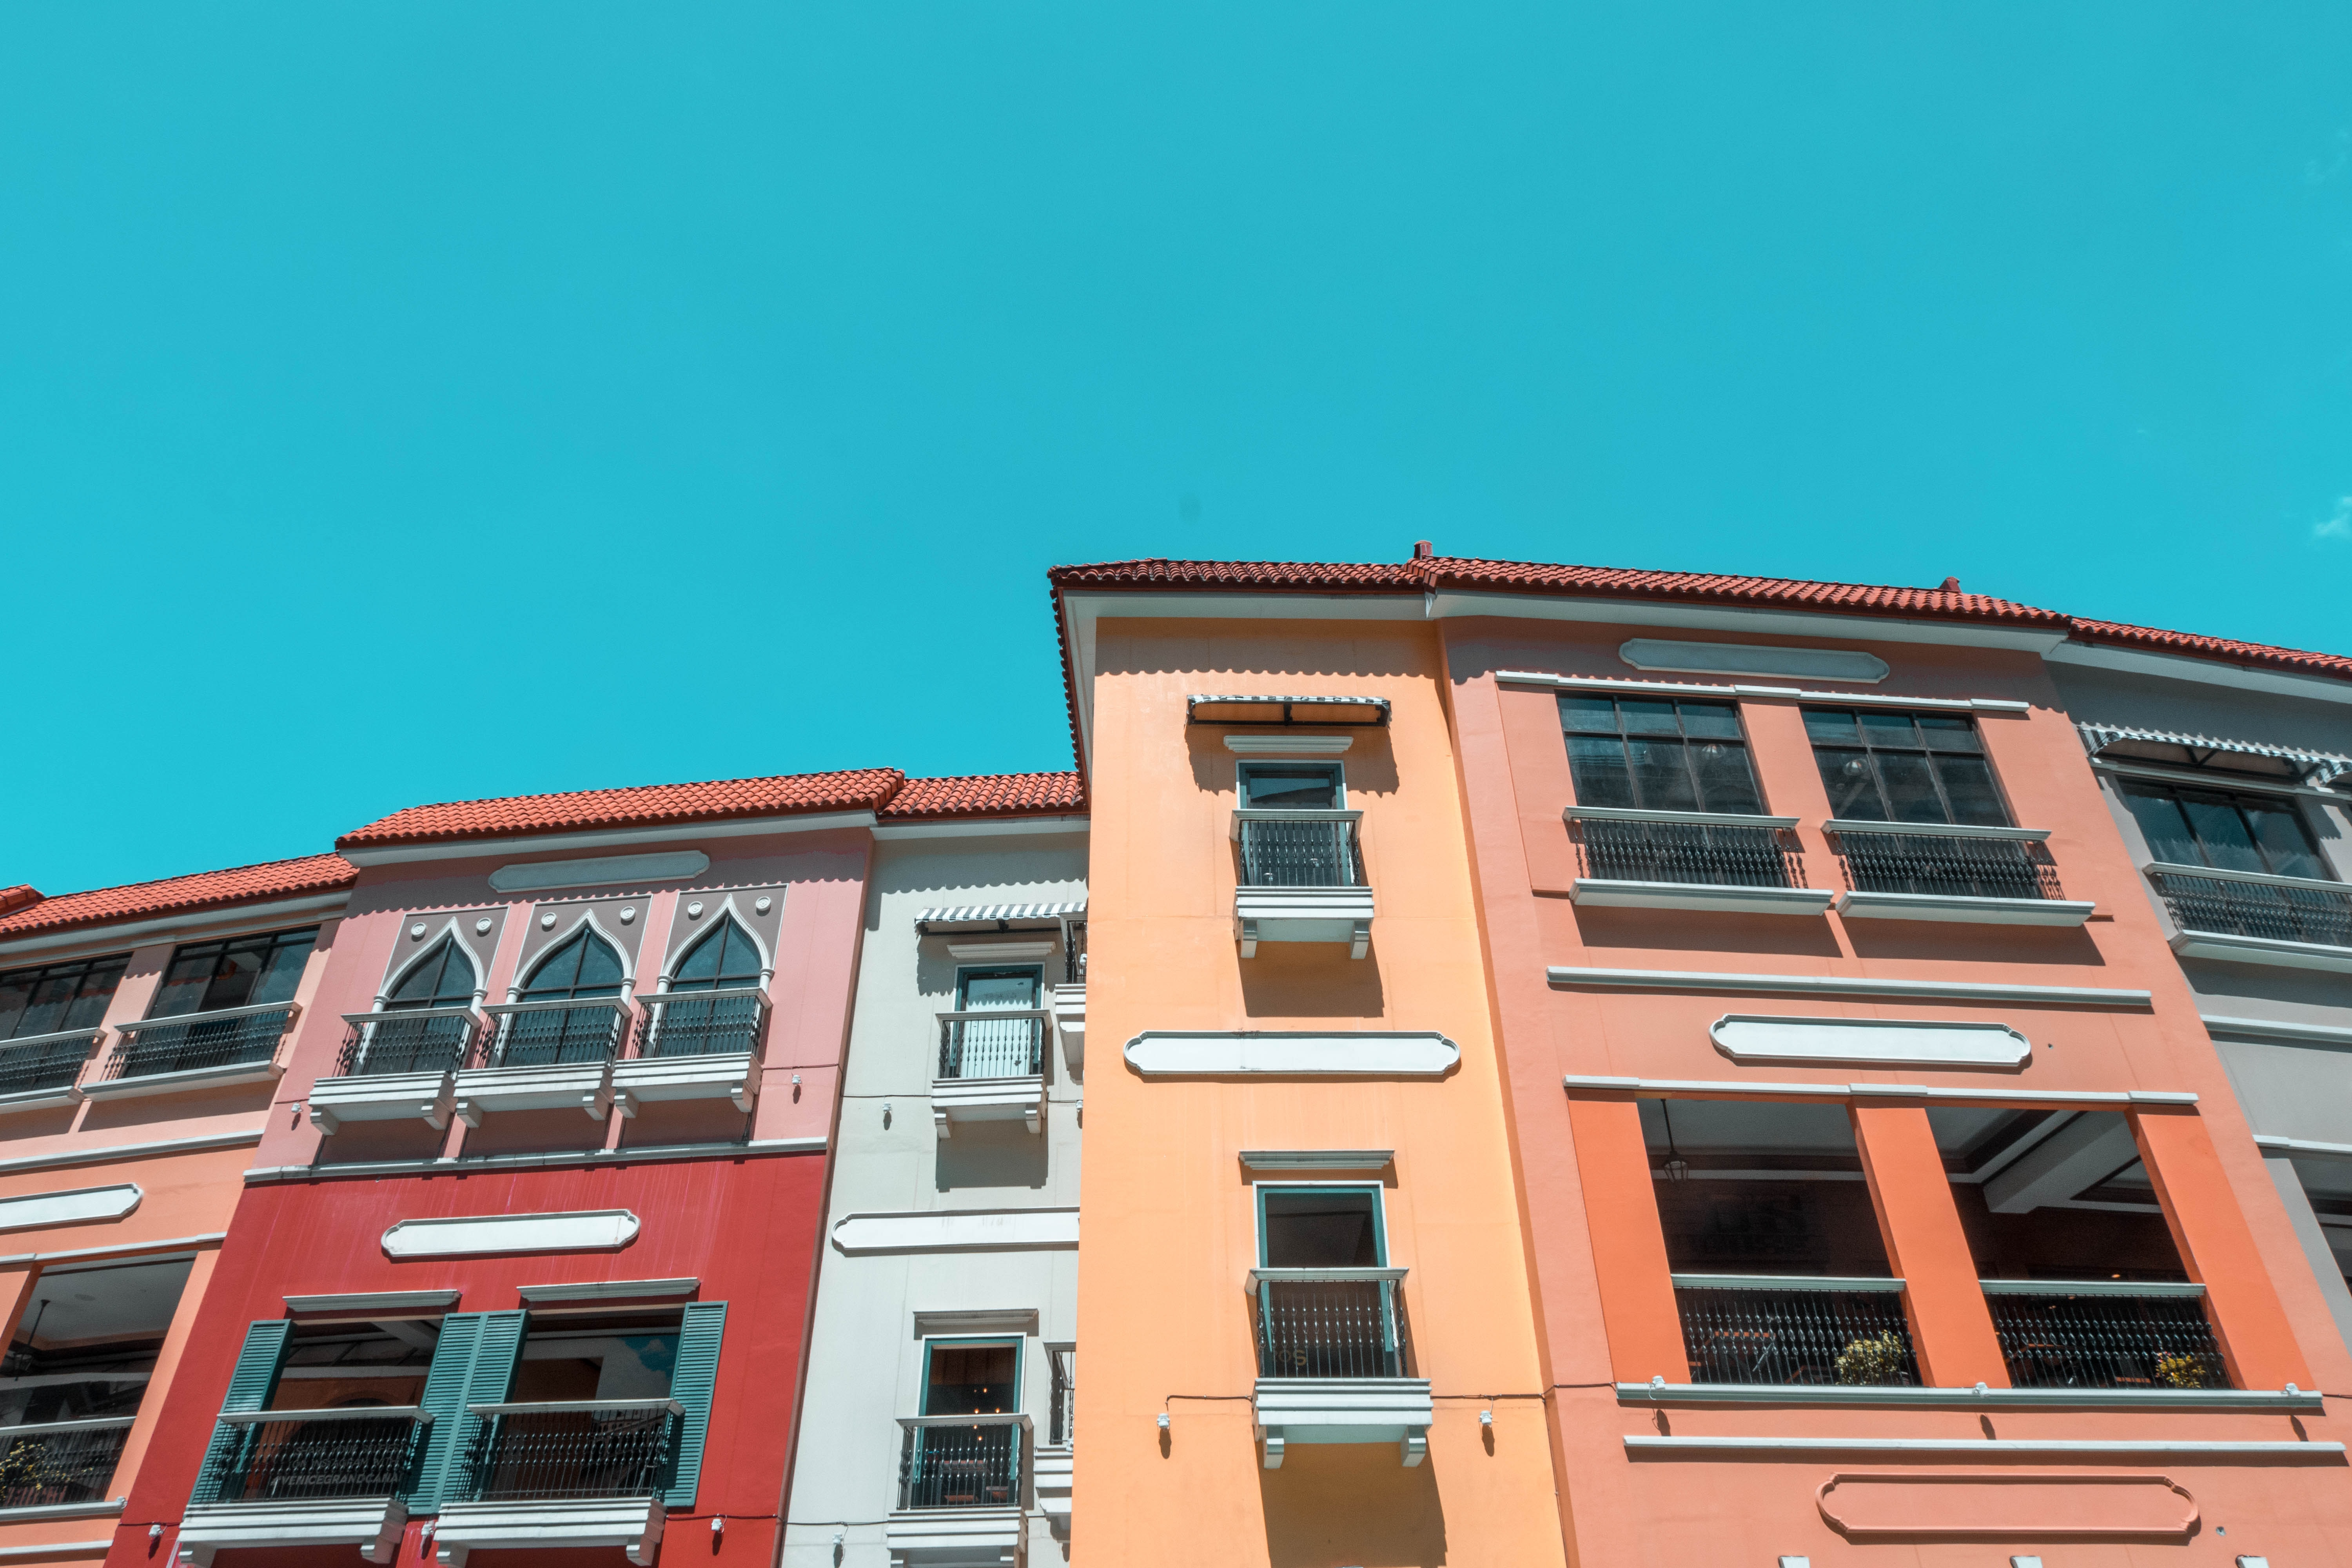 multicolored houses in worm's eye view